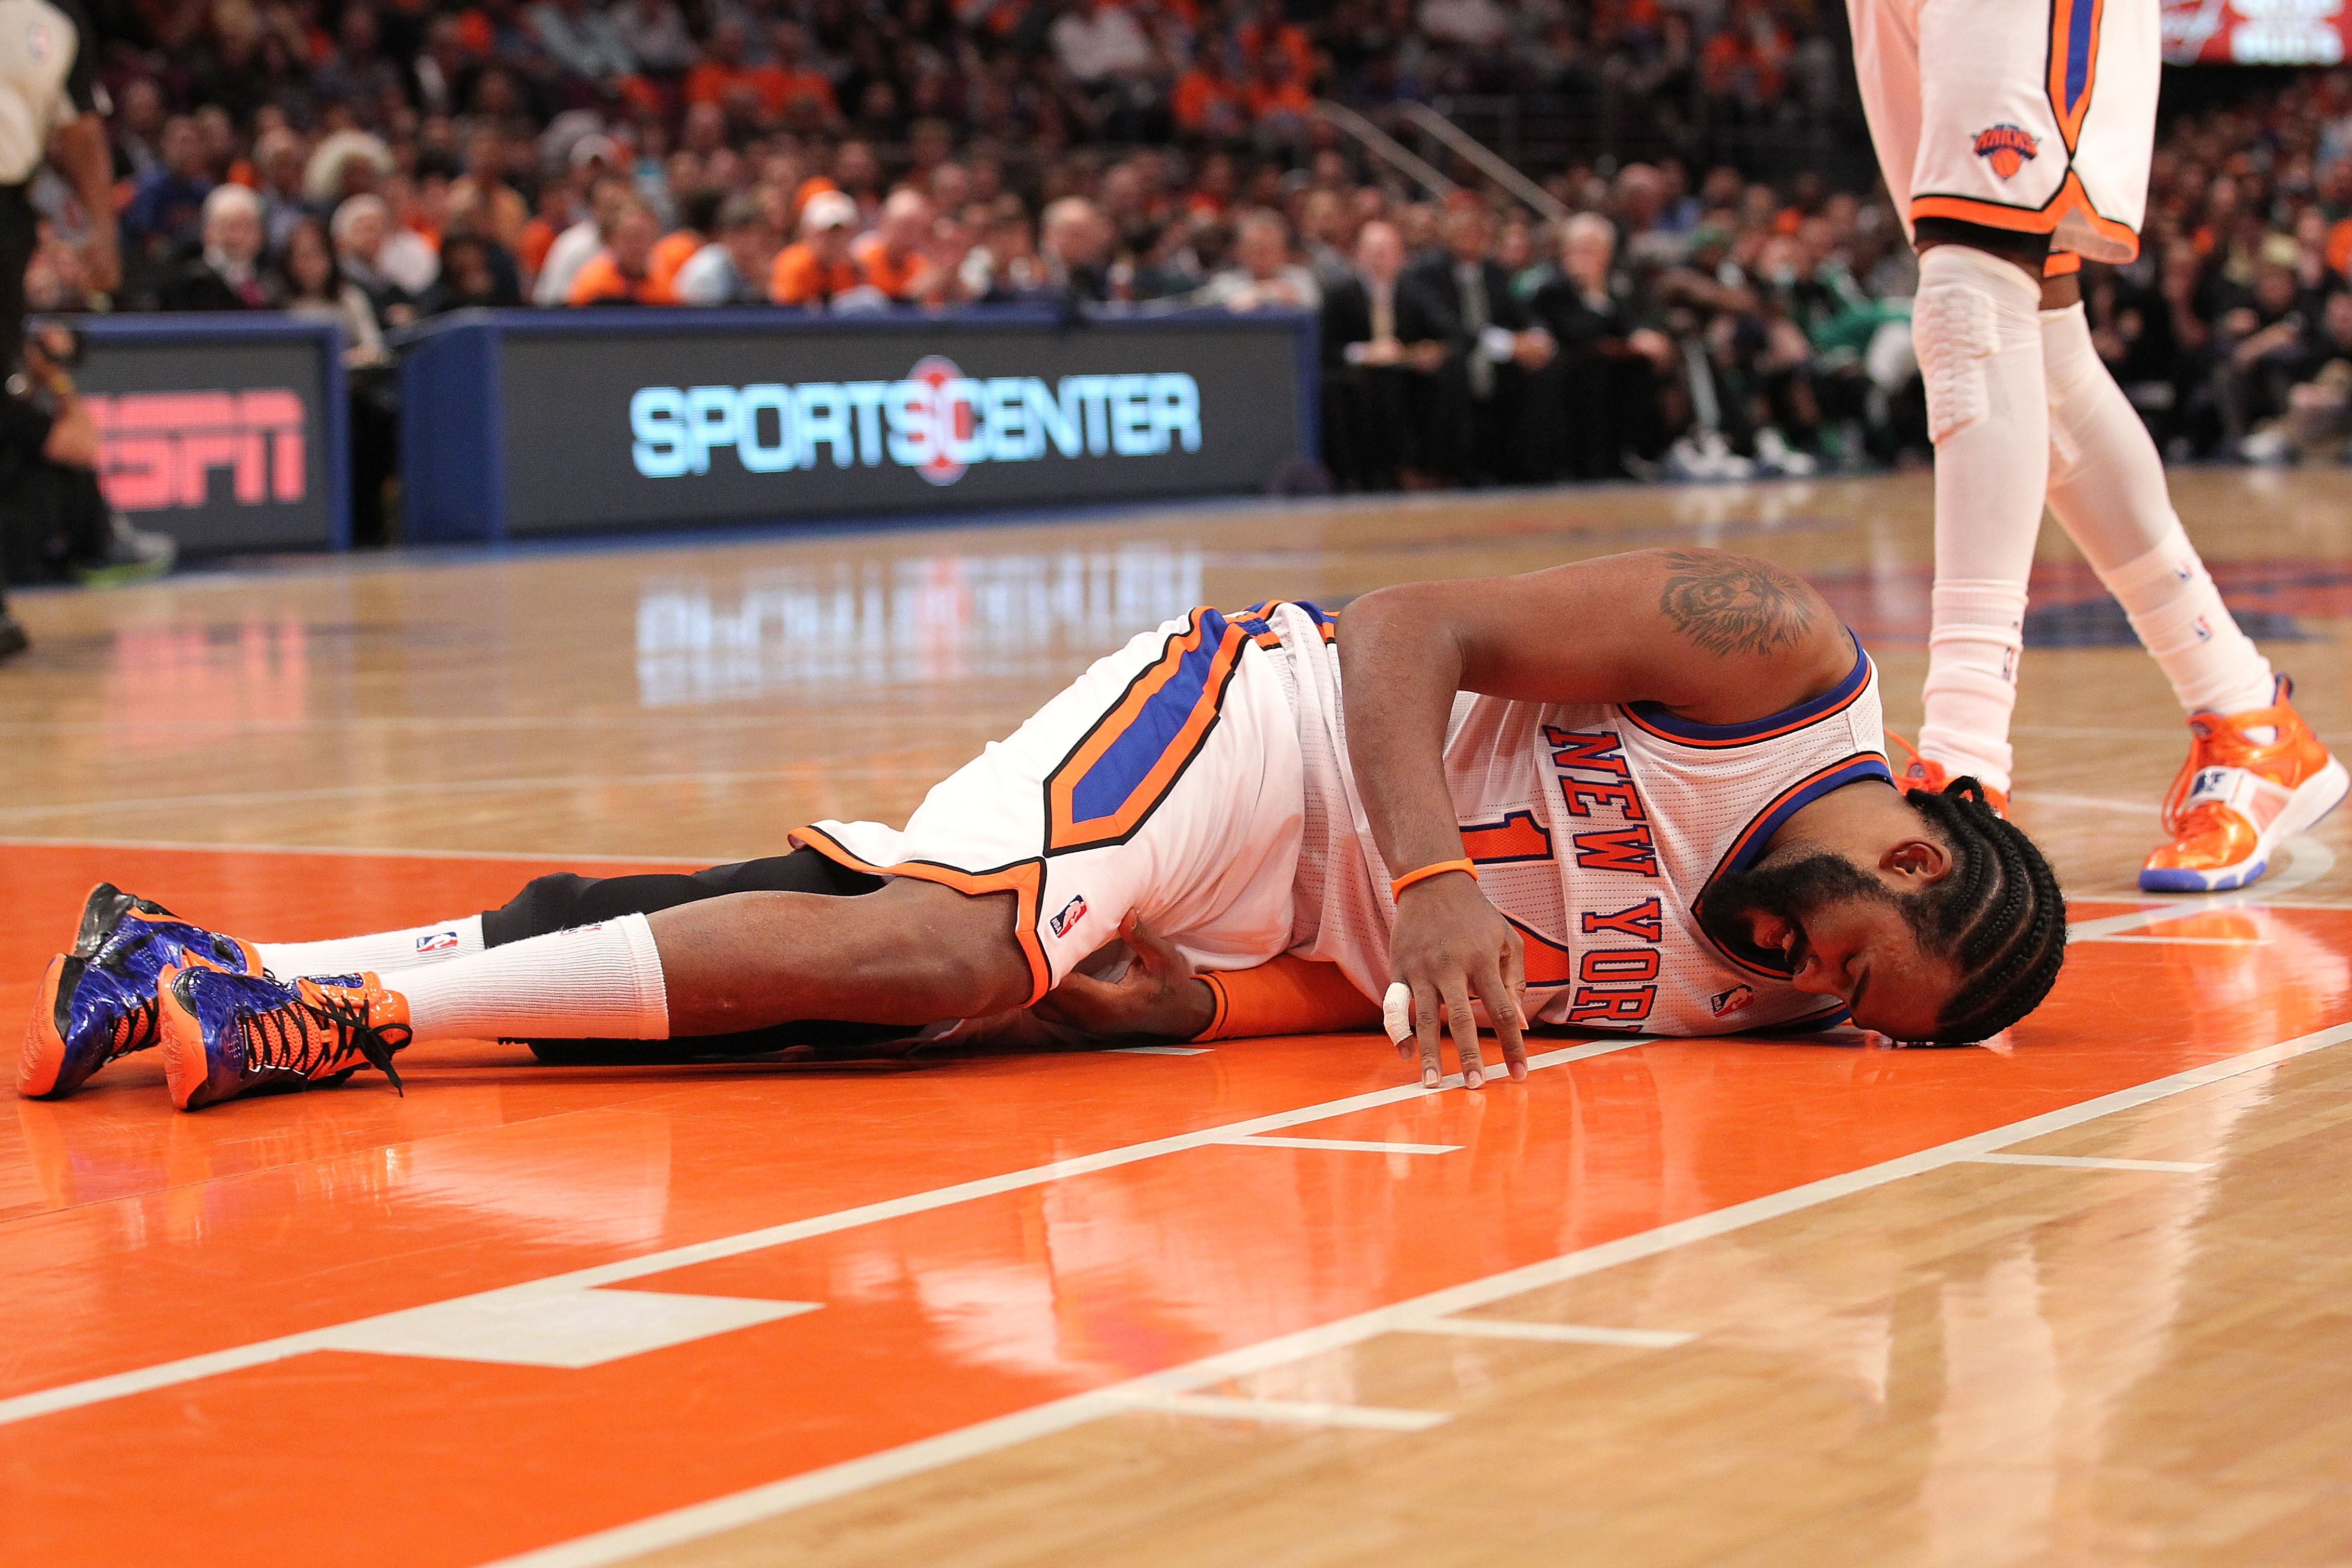 NEW YORK, NY - APRIL 24:  Ronny Turiaf #14 of the New York Knicks lies on the court in pain against the Boston Celtics in Game Four of the Eastern Conference Quarterfinals during the 2011 NBA Playoffs on April 24, 2011 at Madison Square Garden in New York